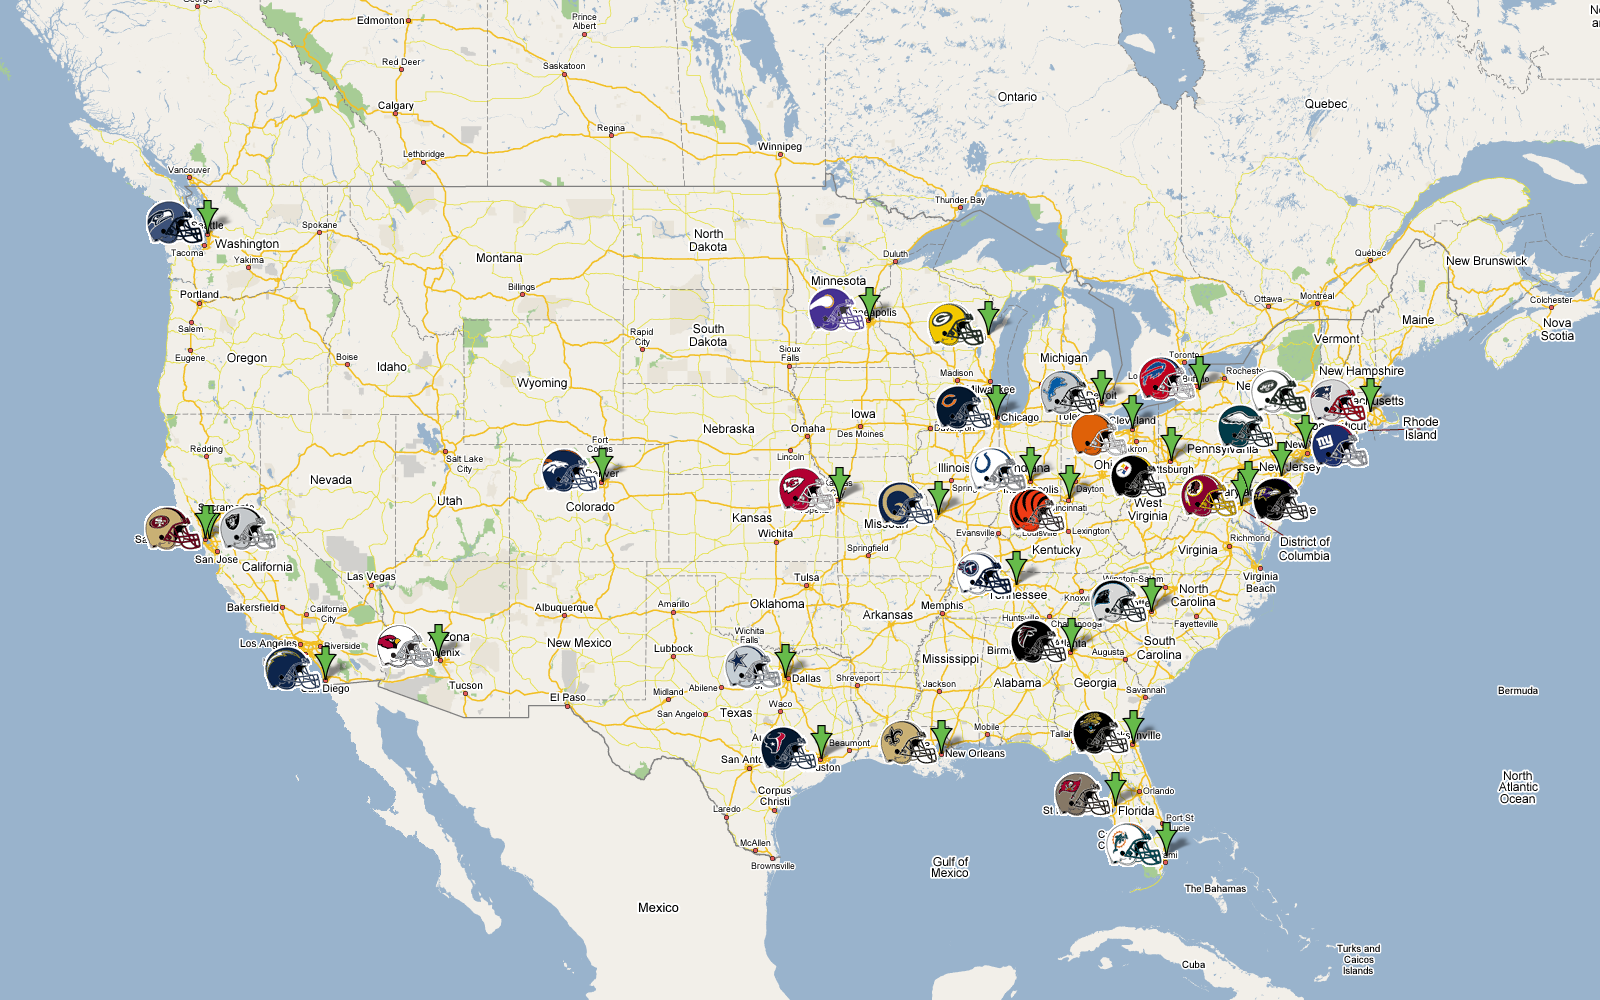 Nfl Football Team Map Pictures To Pin On Pinterest PinsDaddy - Us map nfl teams